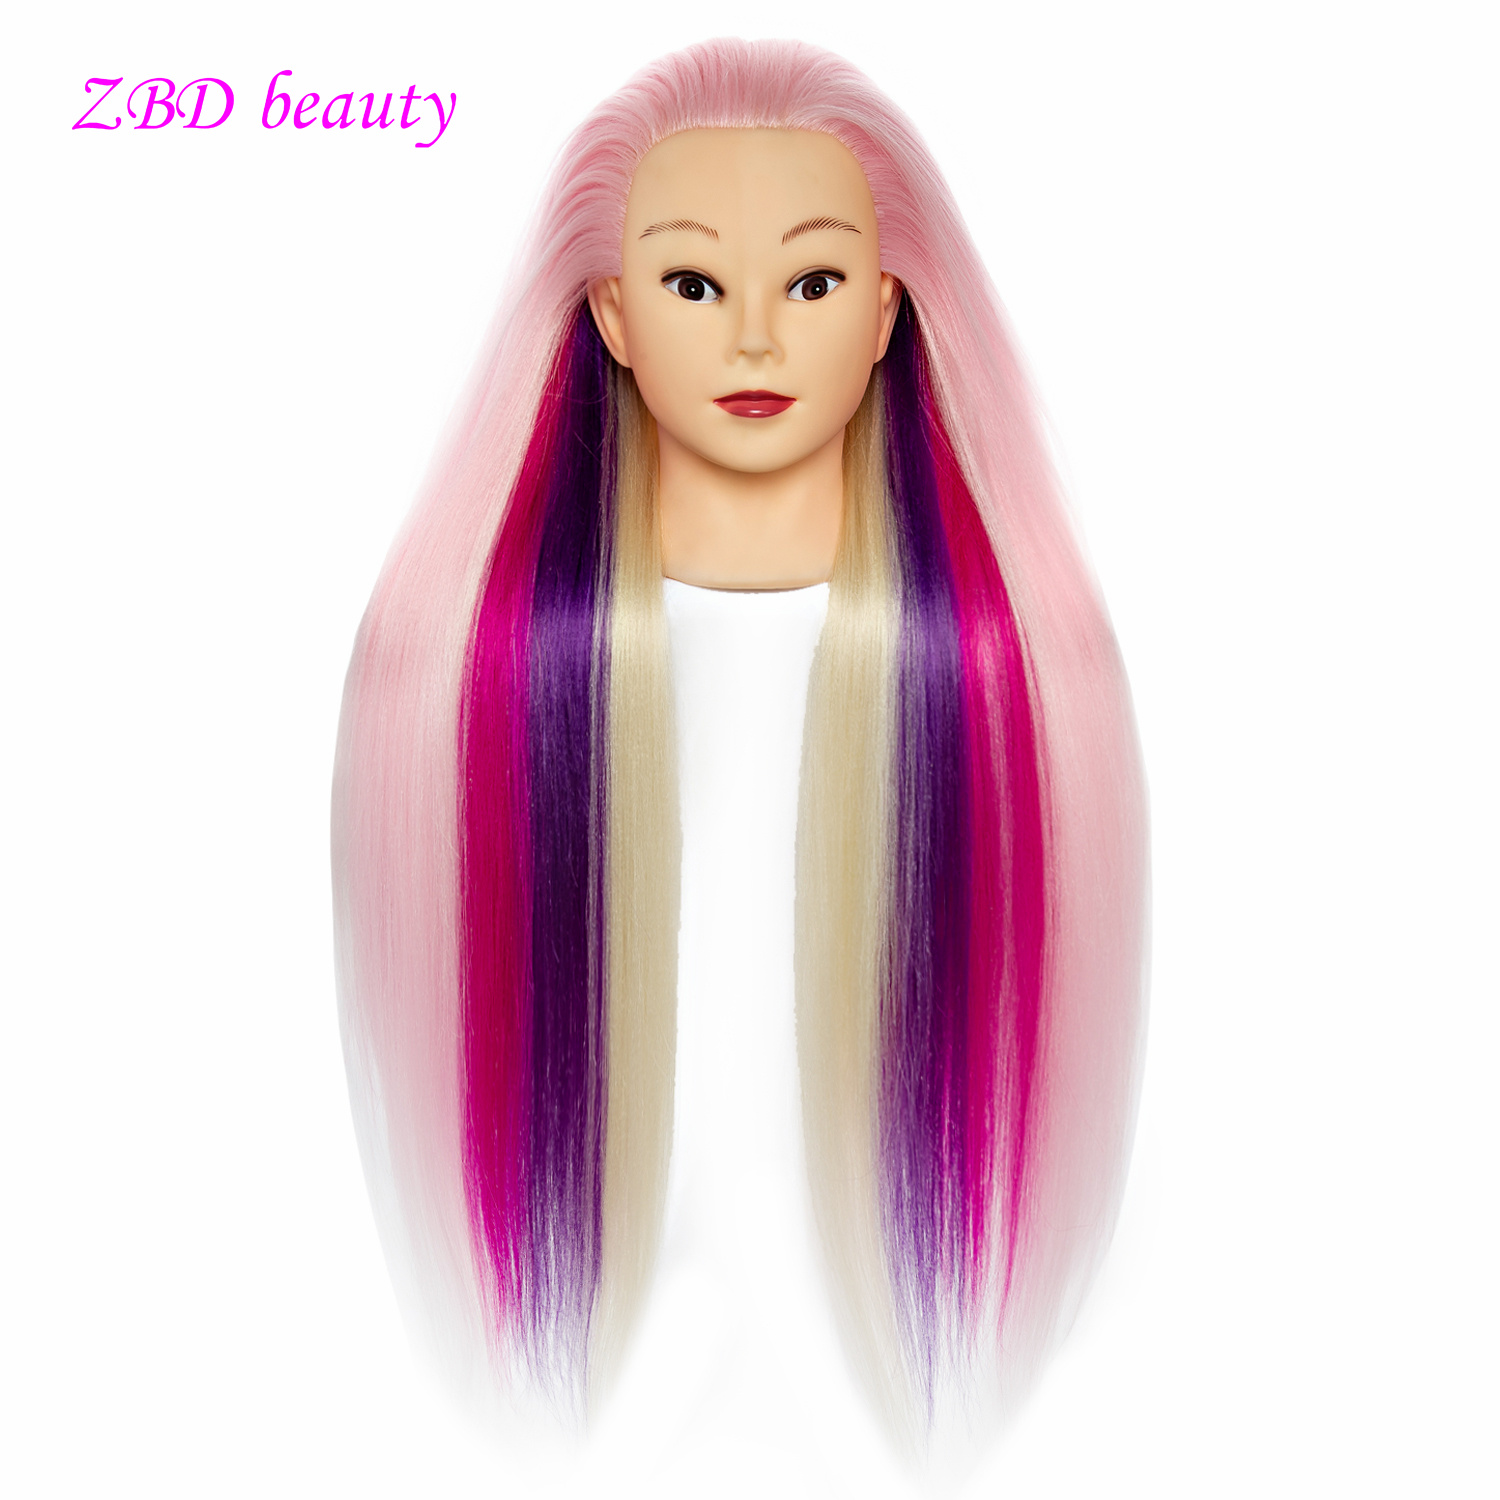 Doll Head For Training 24inch Styling Head Doll Hair Mannequin Head Hairdressing Mannequin Heads Barbie Head